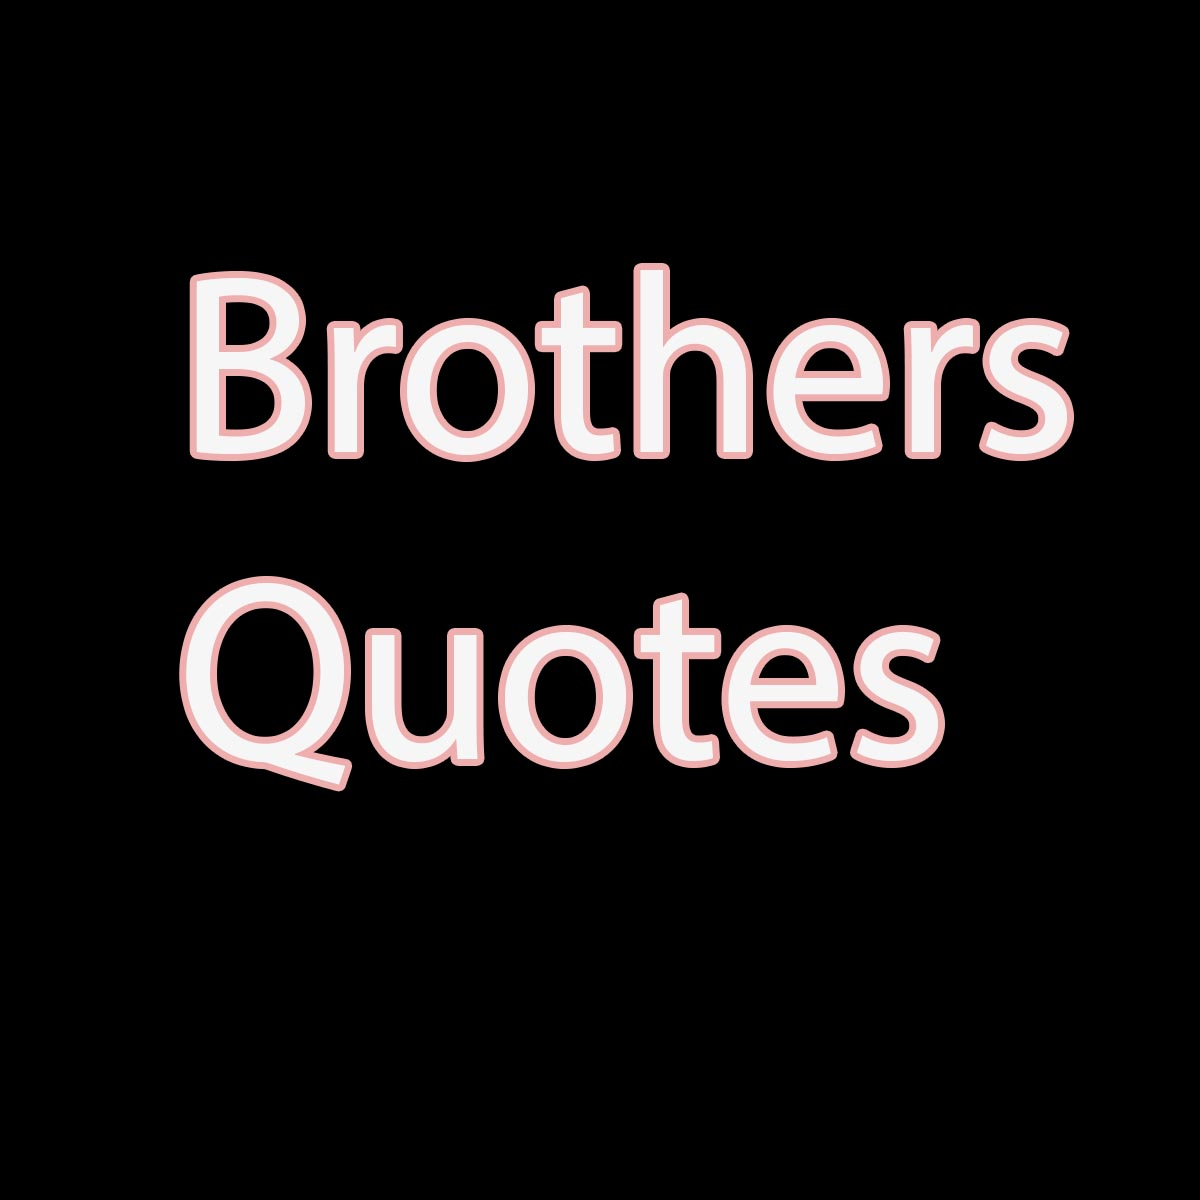 Brothers quotes Companion quotes